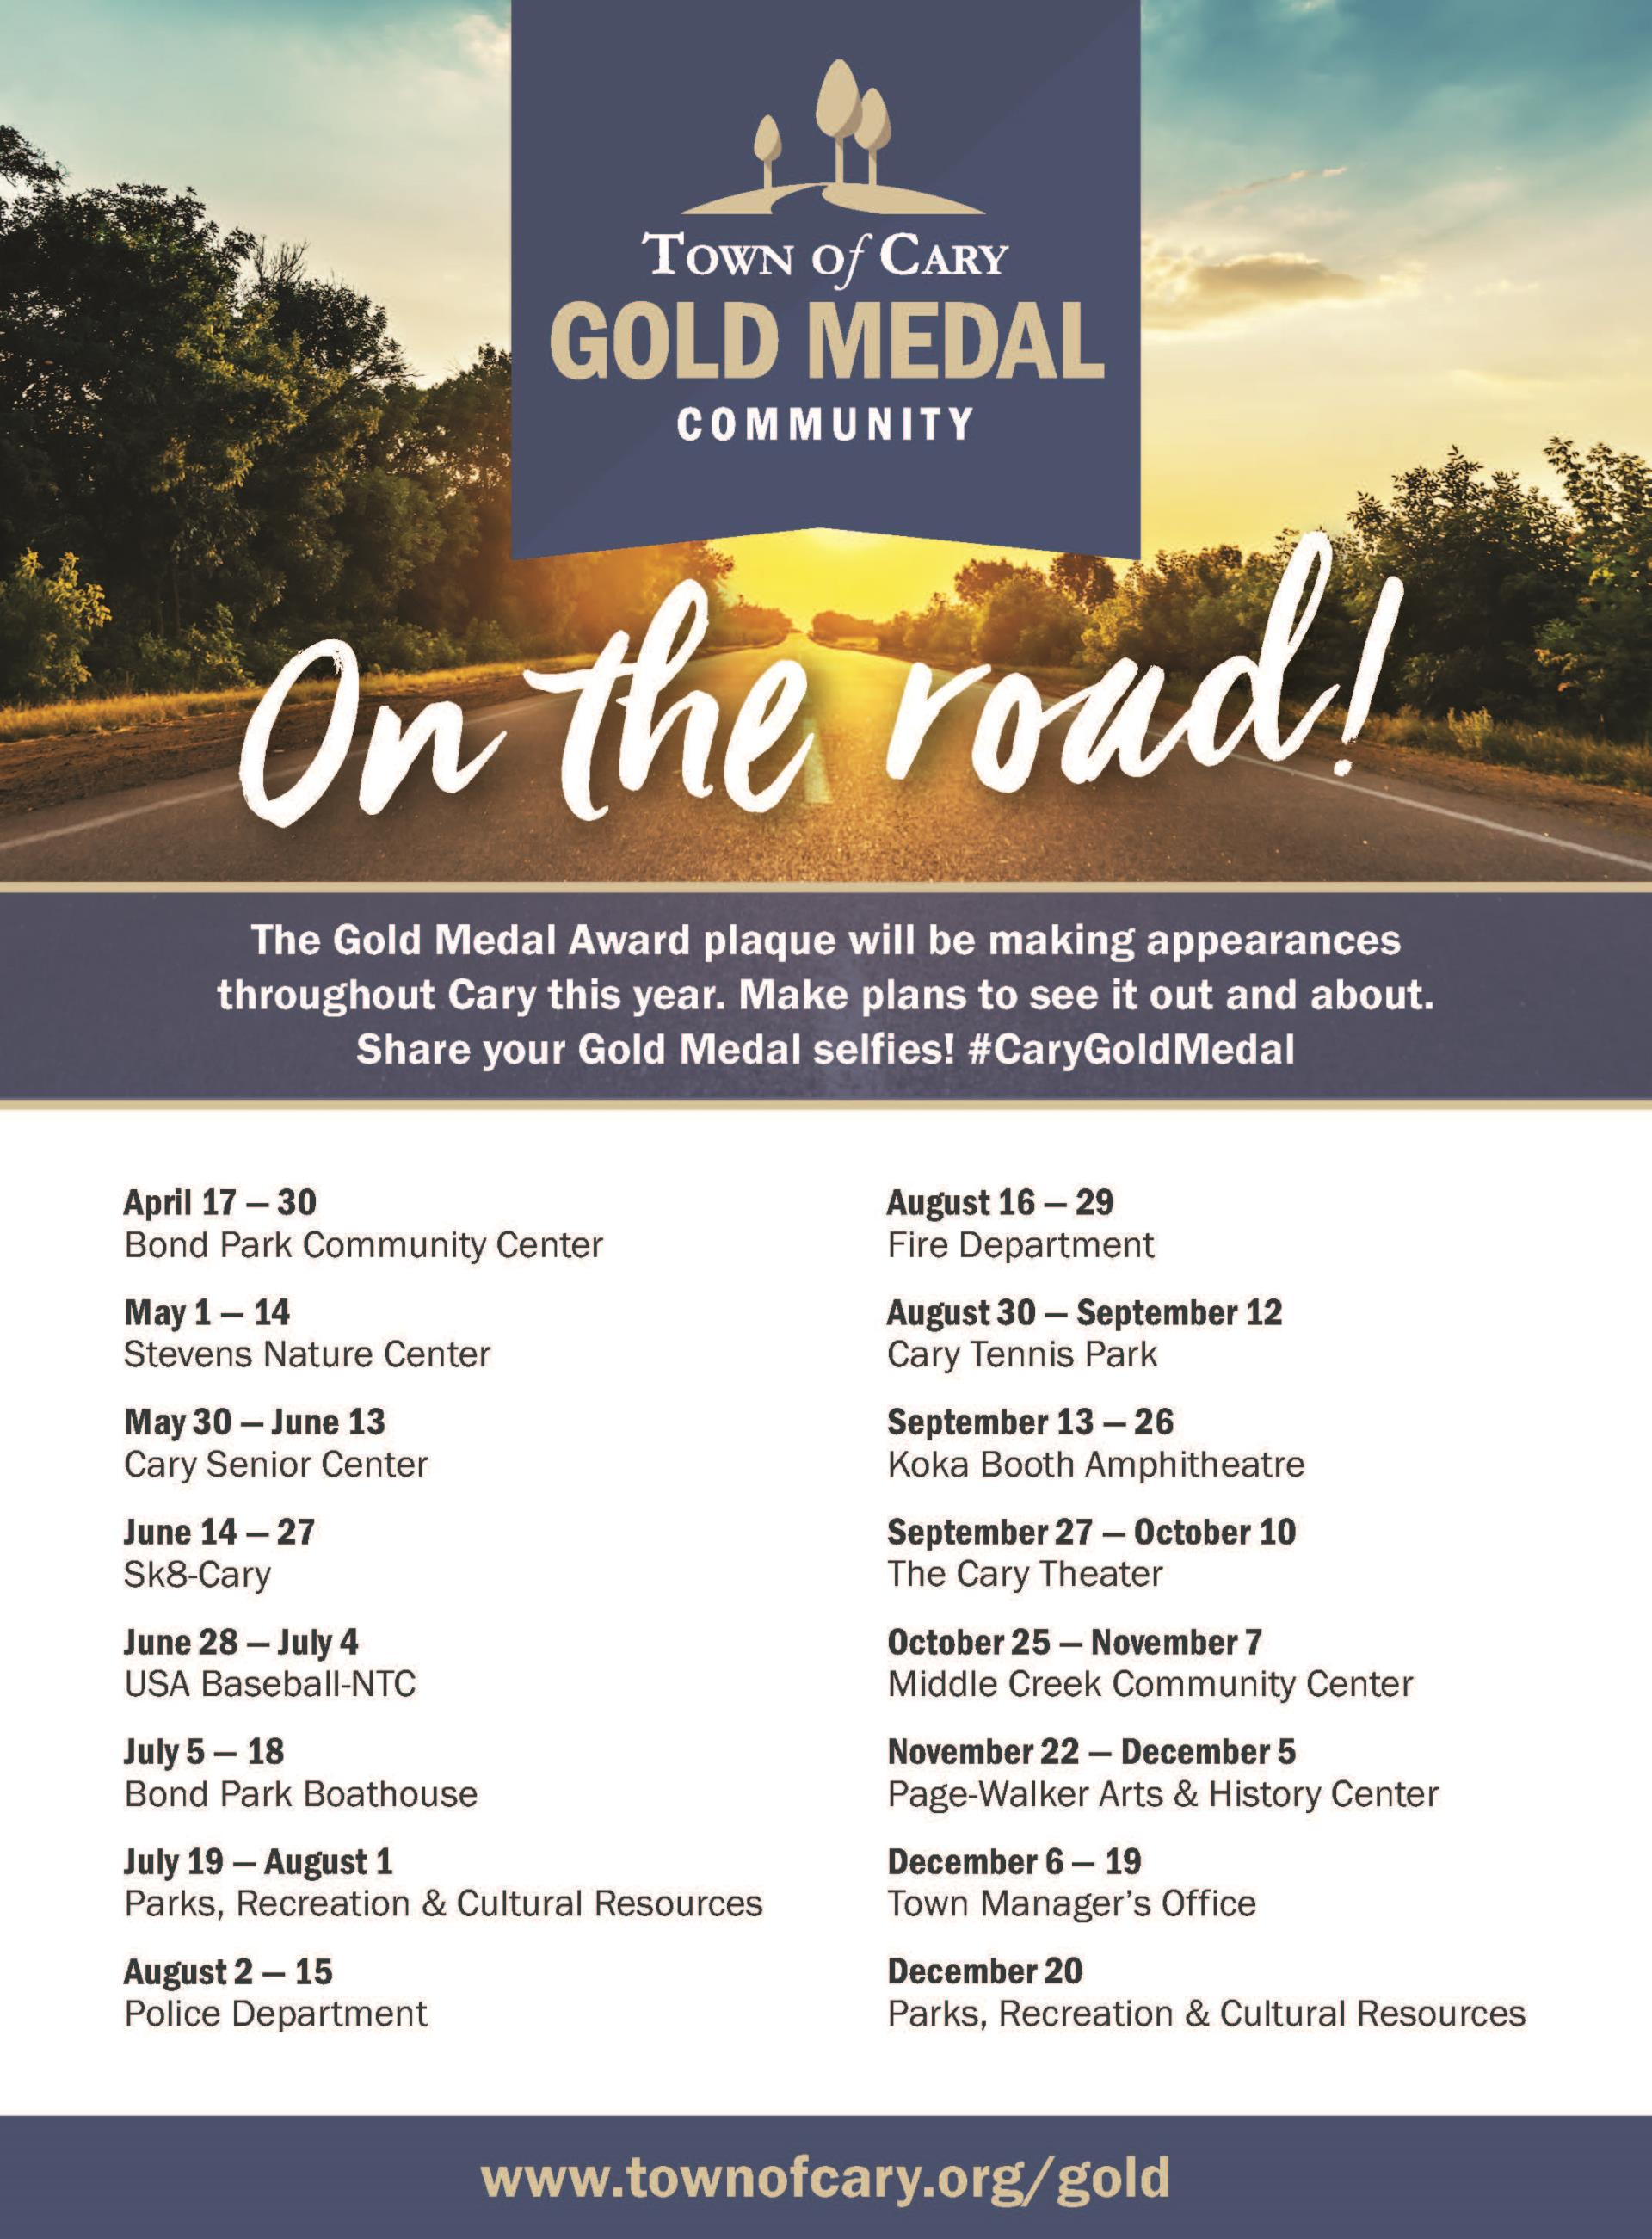 Gold Medal on the Road Schedule